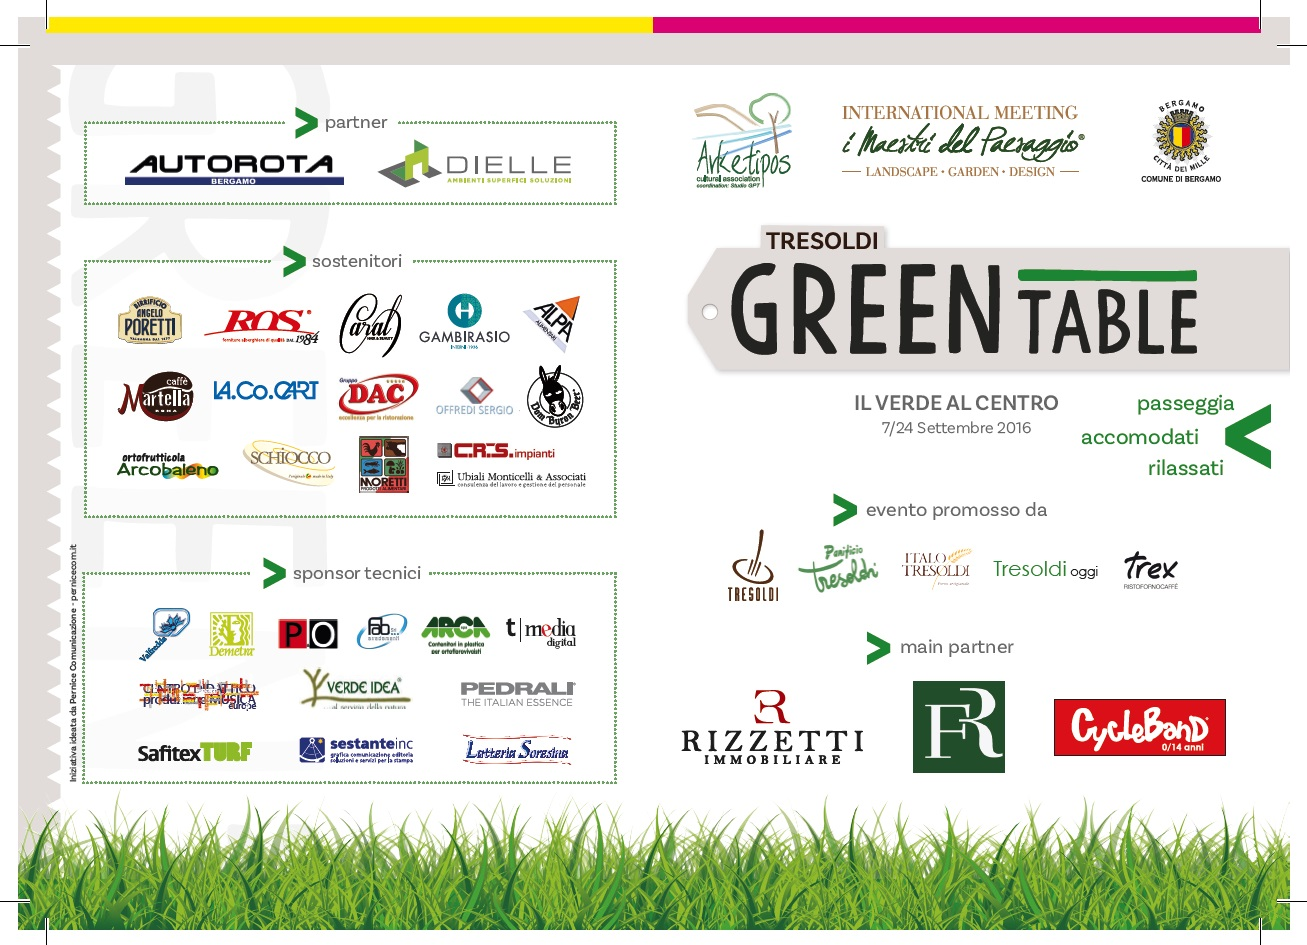 Cartellone evento Tresoldi Green Table